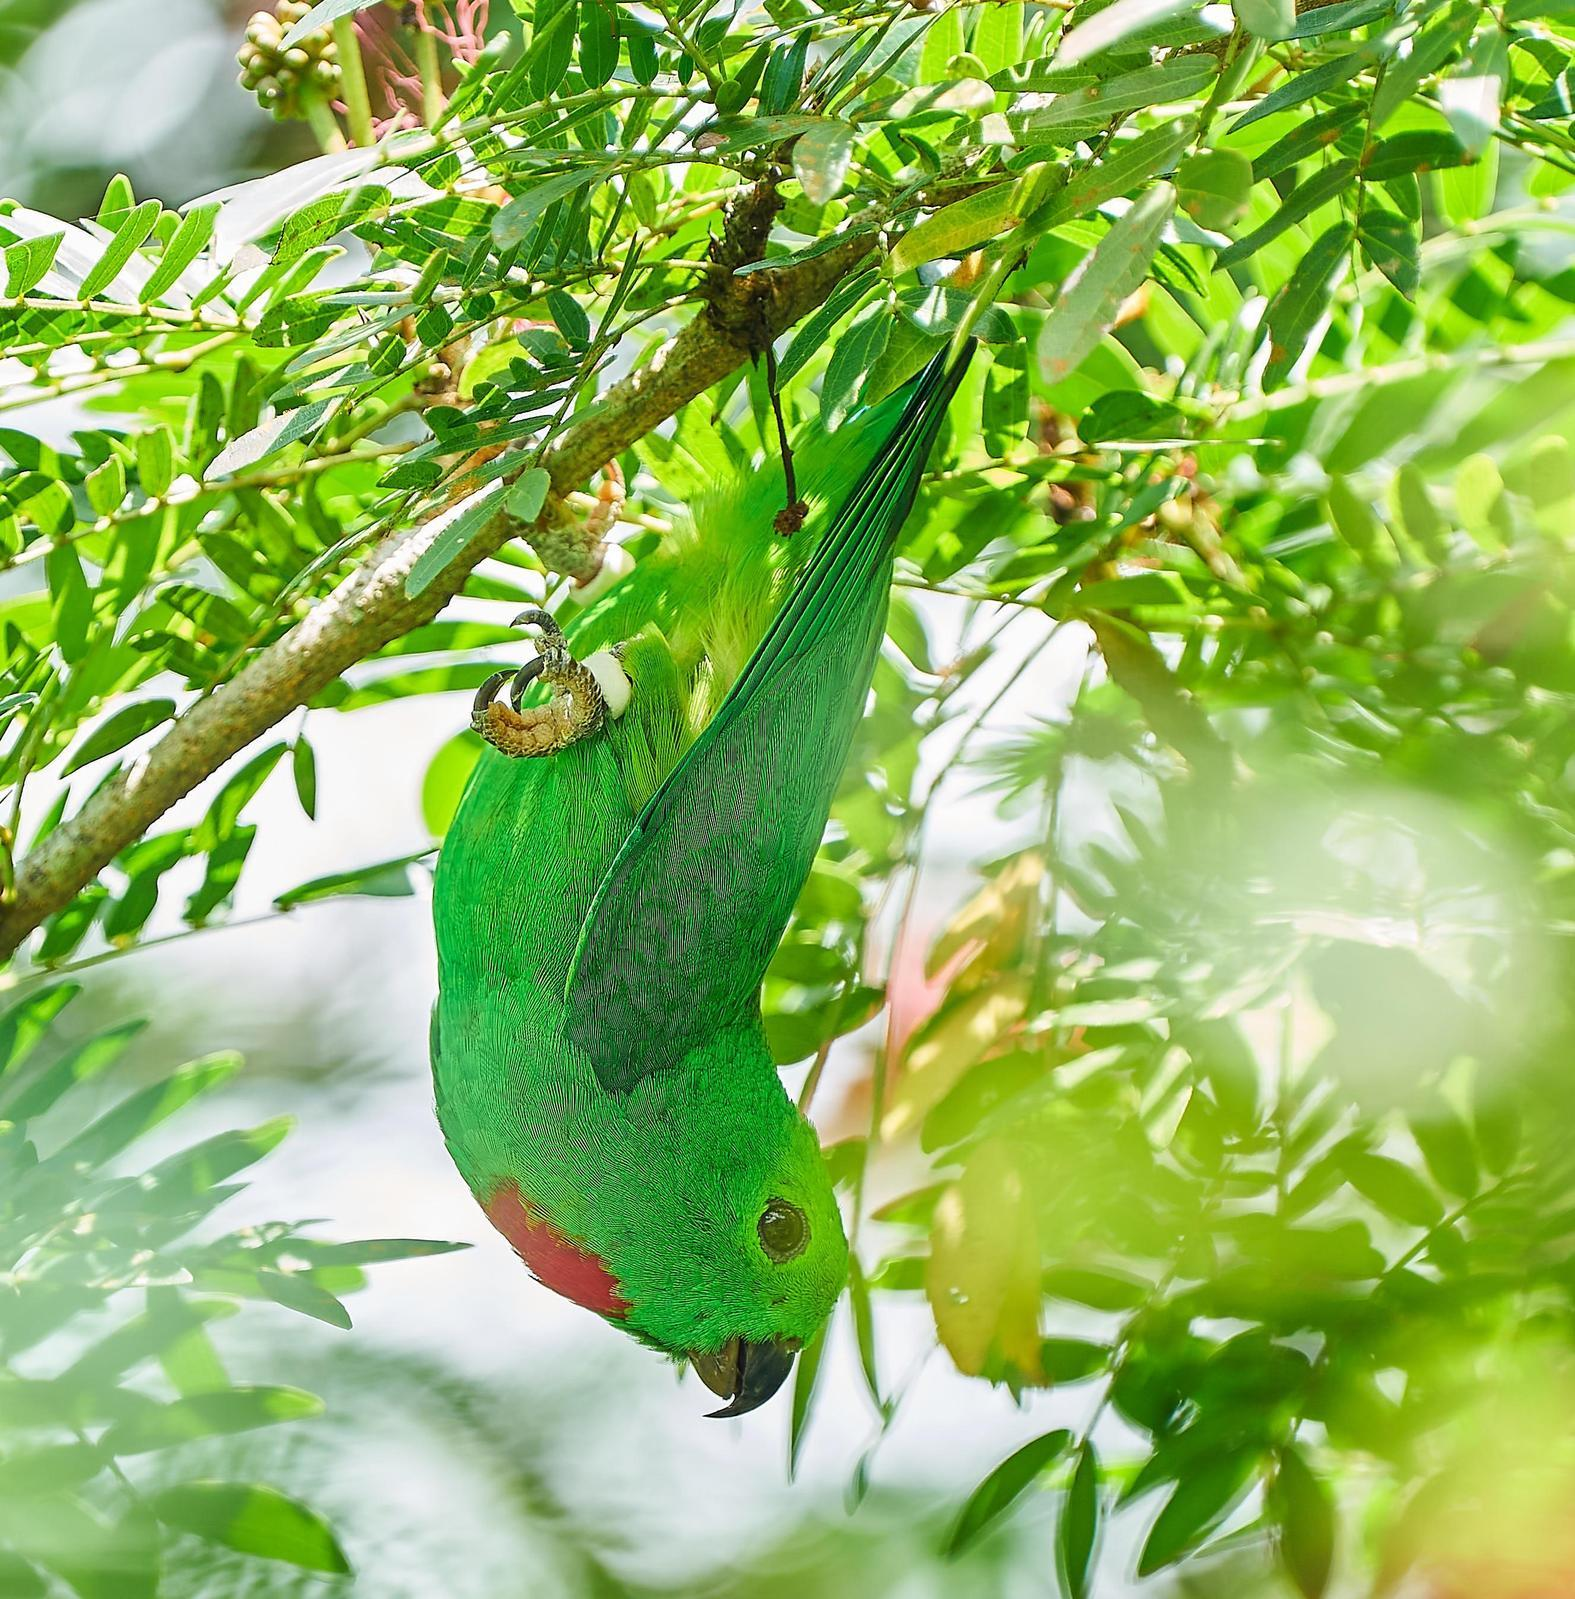 Blue-crowned Hanging-Parrot Photo by Steven Cheong